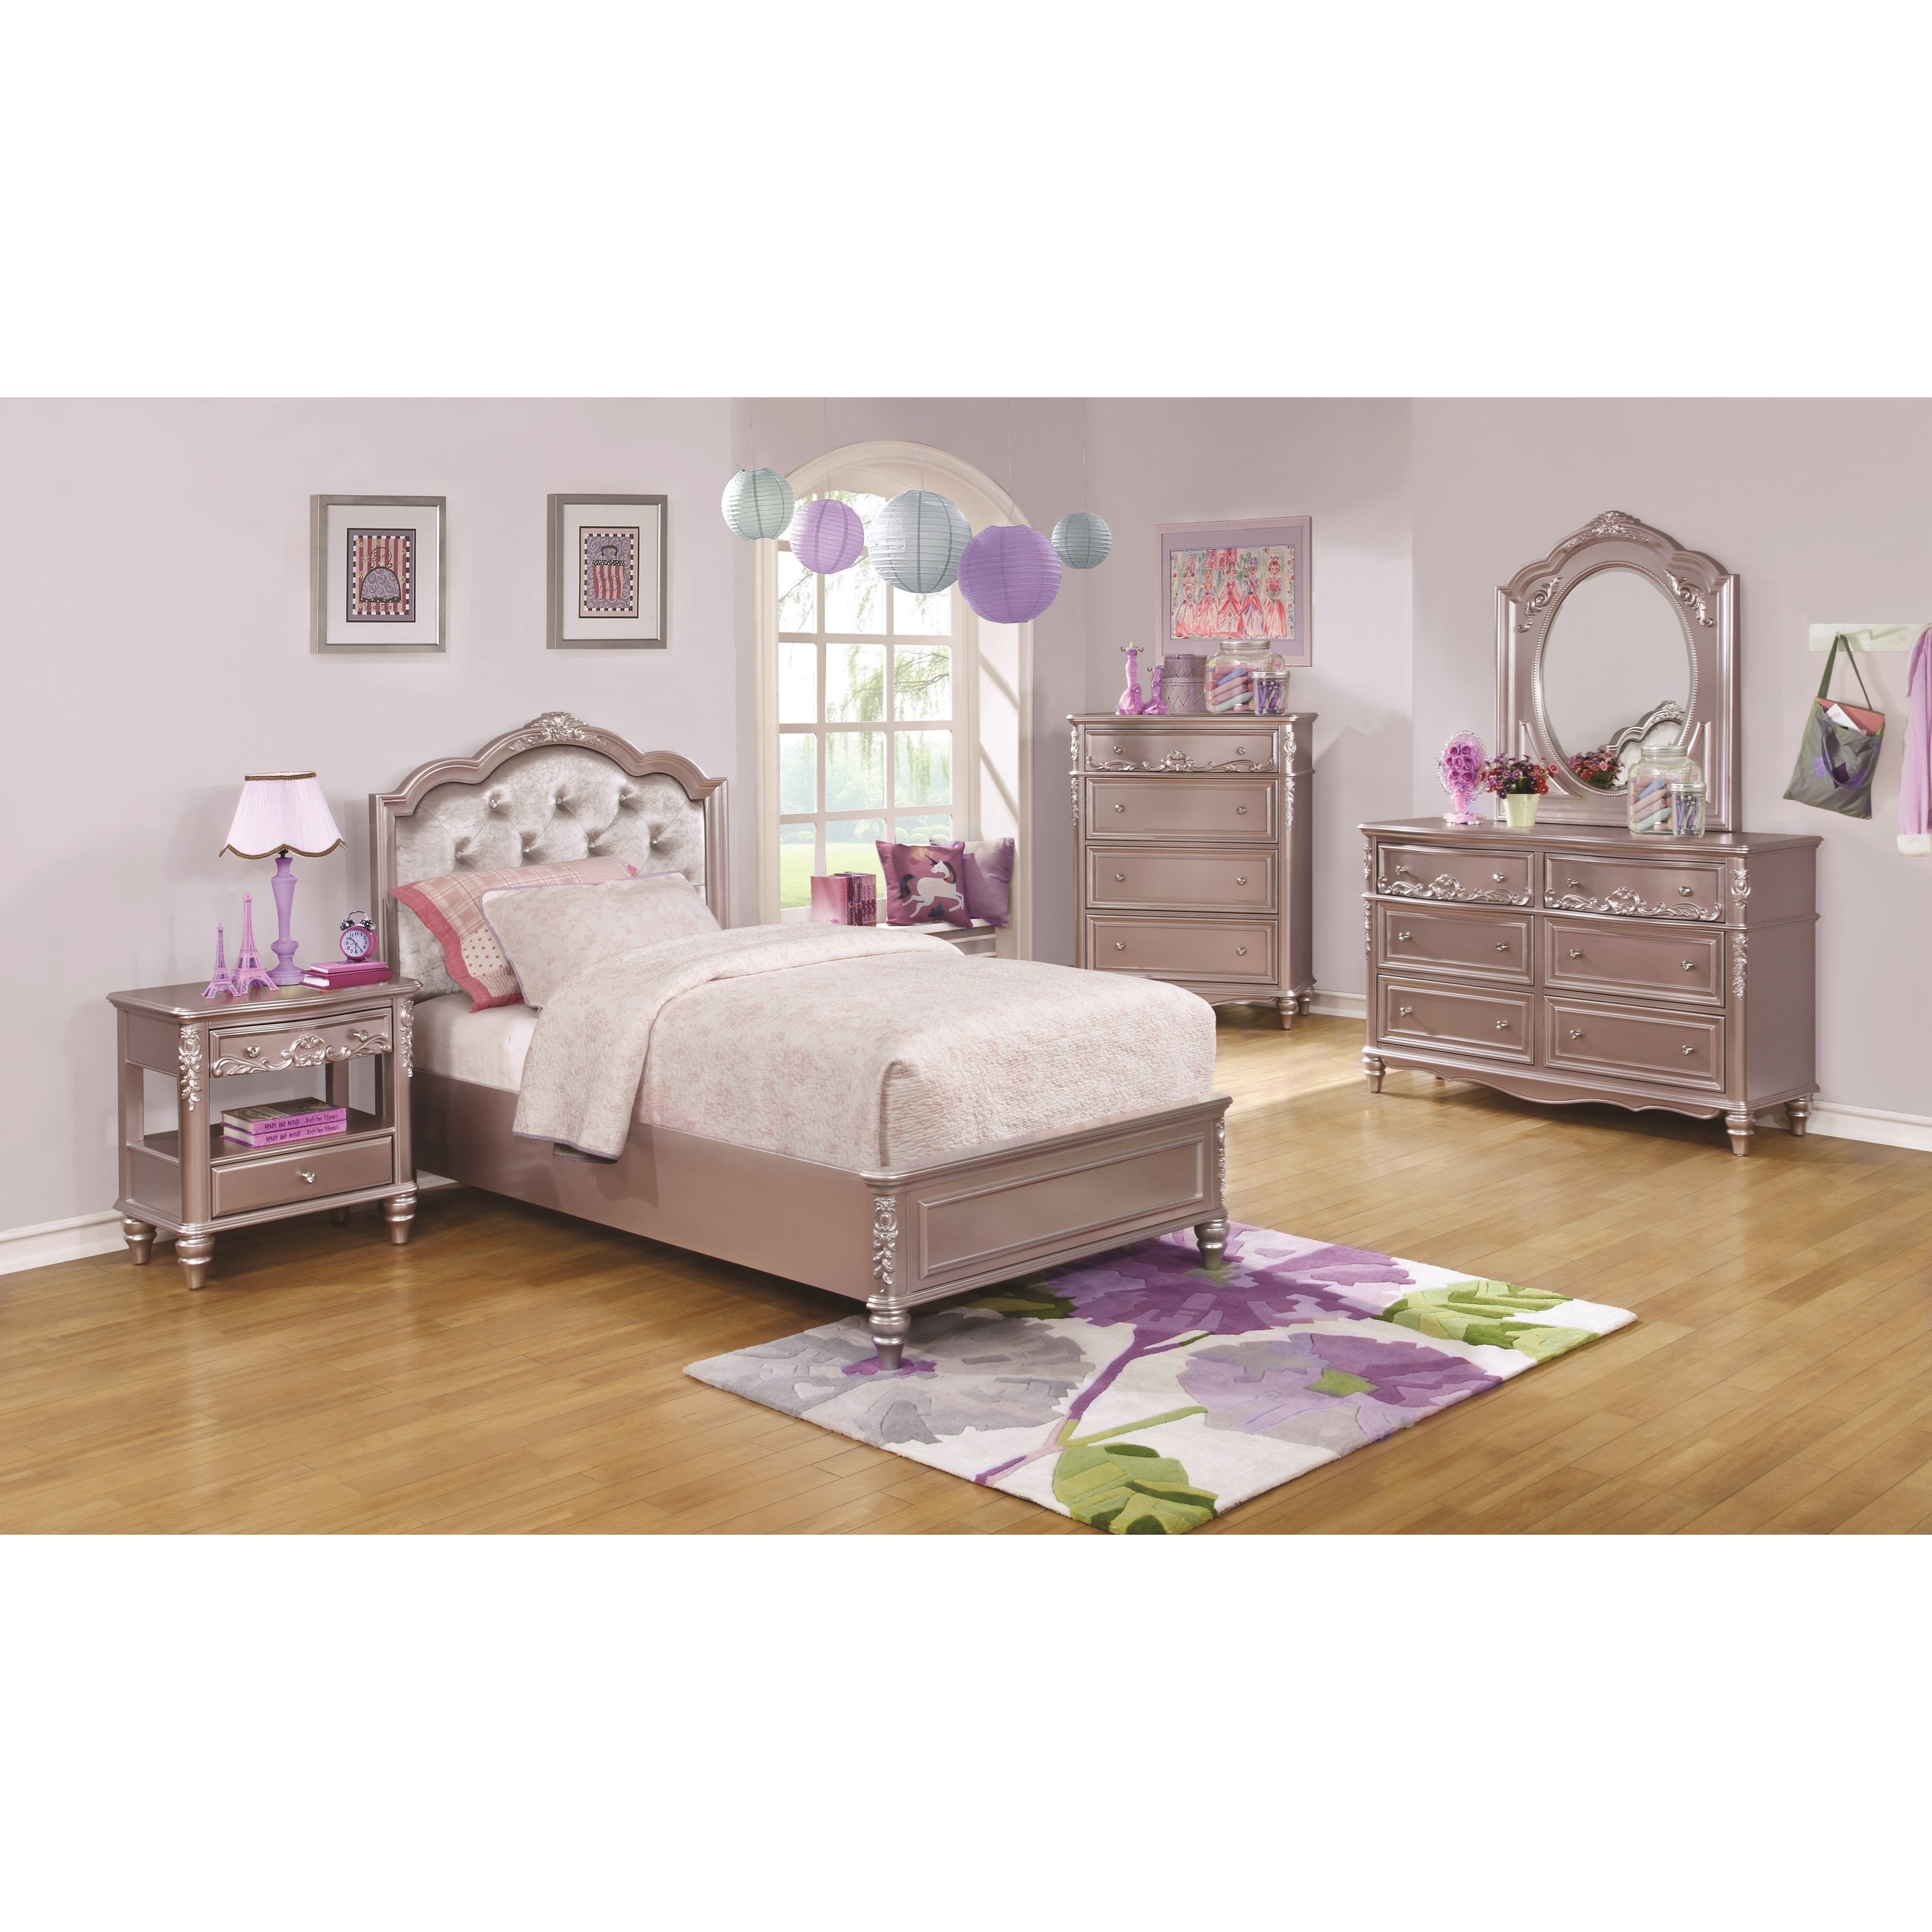 Coaster Caroline T Twin Size Storage Bed with